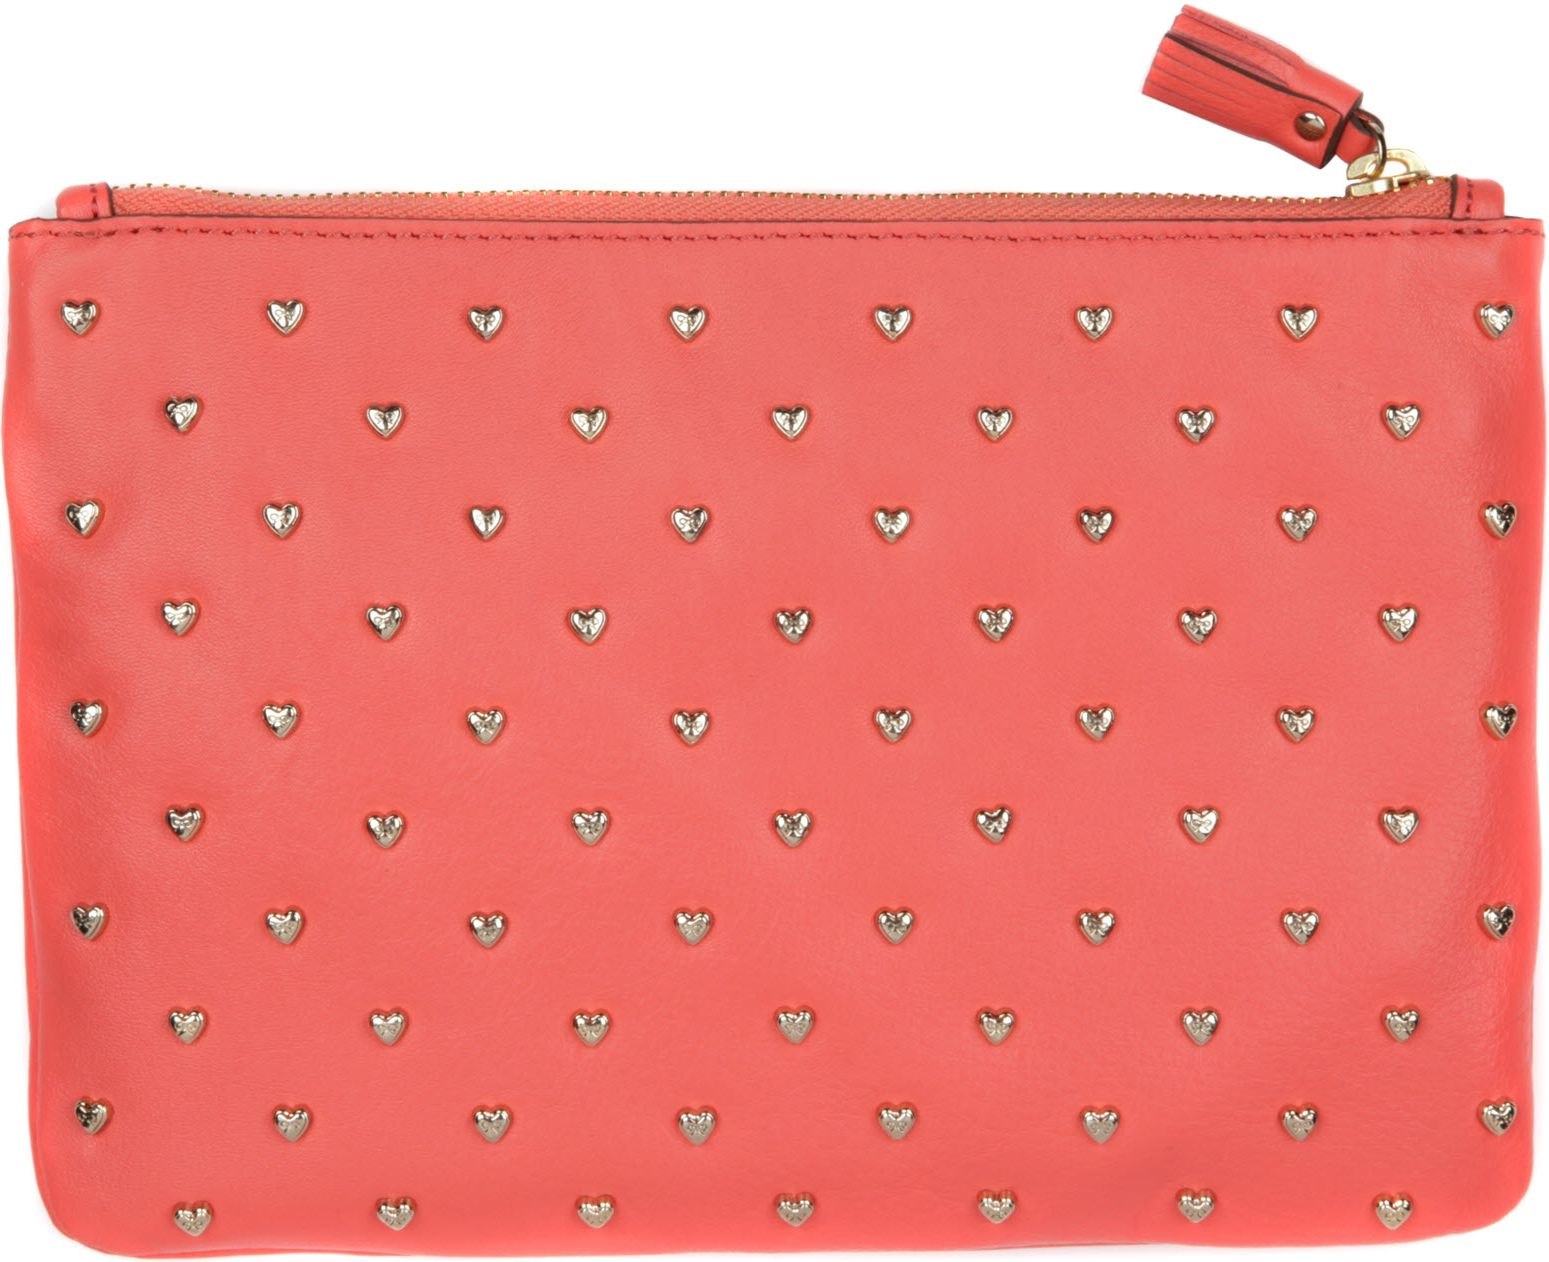 Anya Hindmarch Baby Emergency Kit Bag In Red